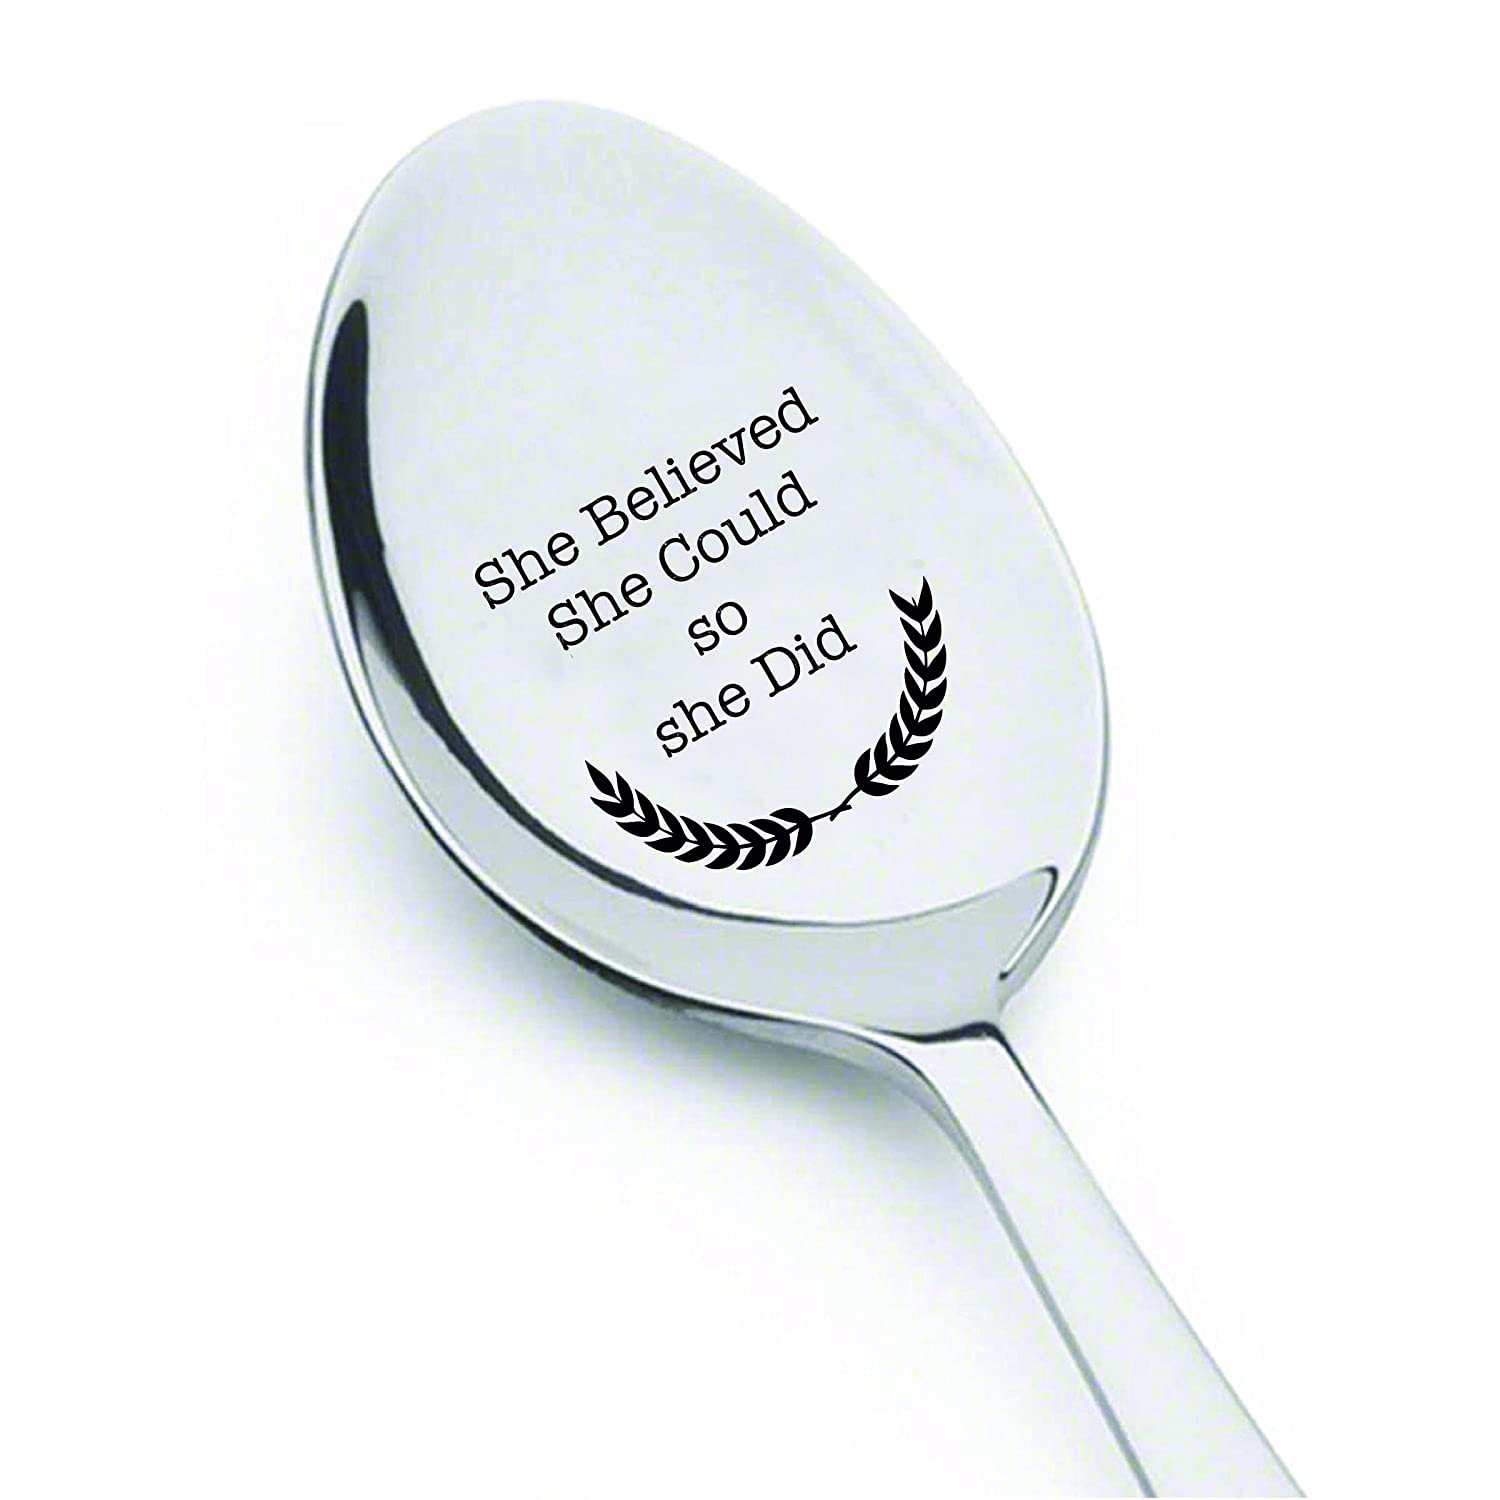 She believed she could so she did - engraved spoon - coffer lover - gift for her - Inspirational quote - Great Gift - Unique law school gift ideas for grads